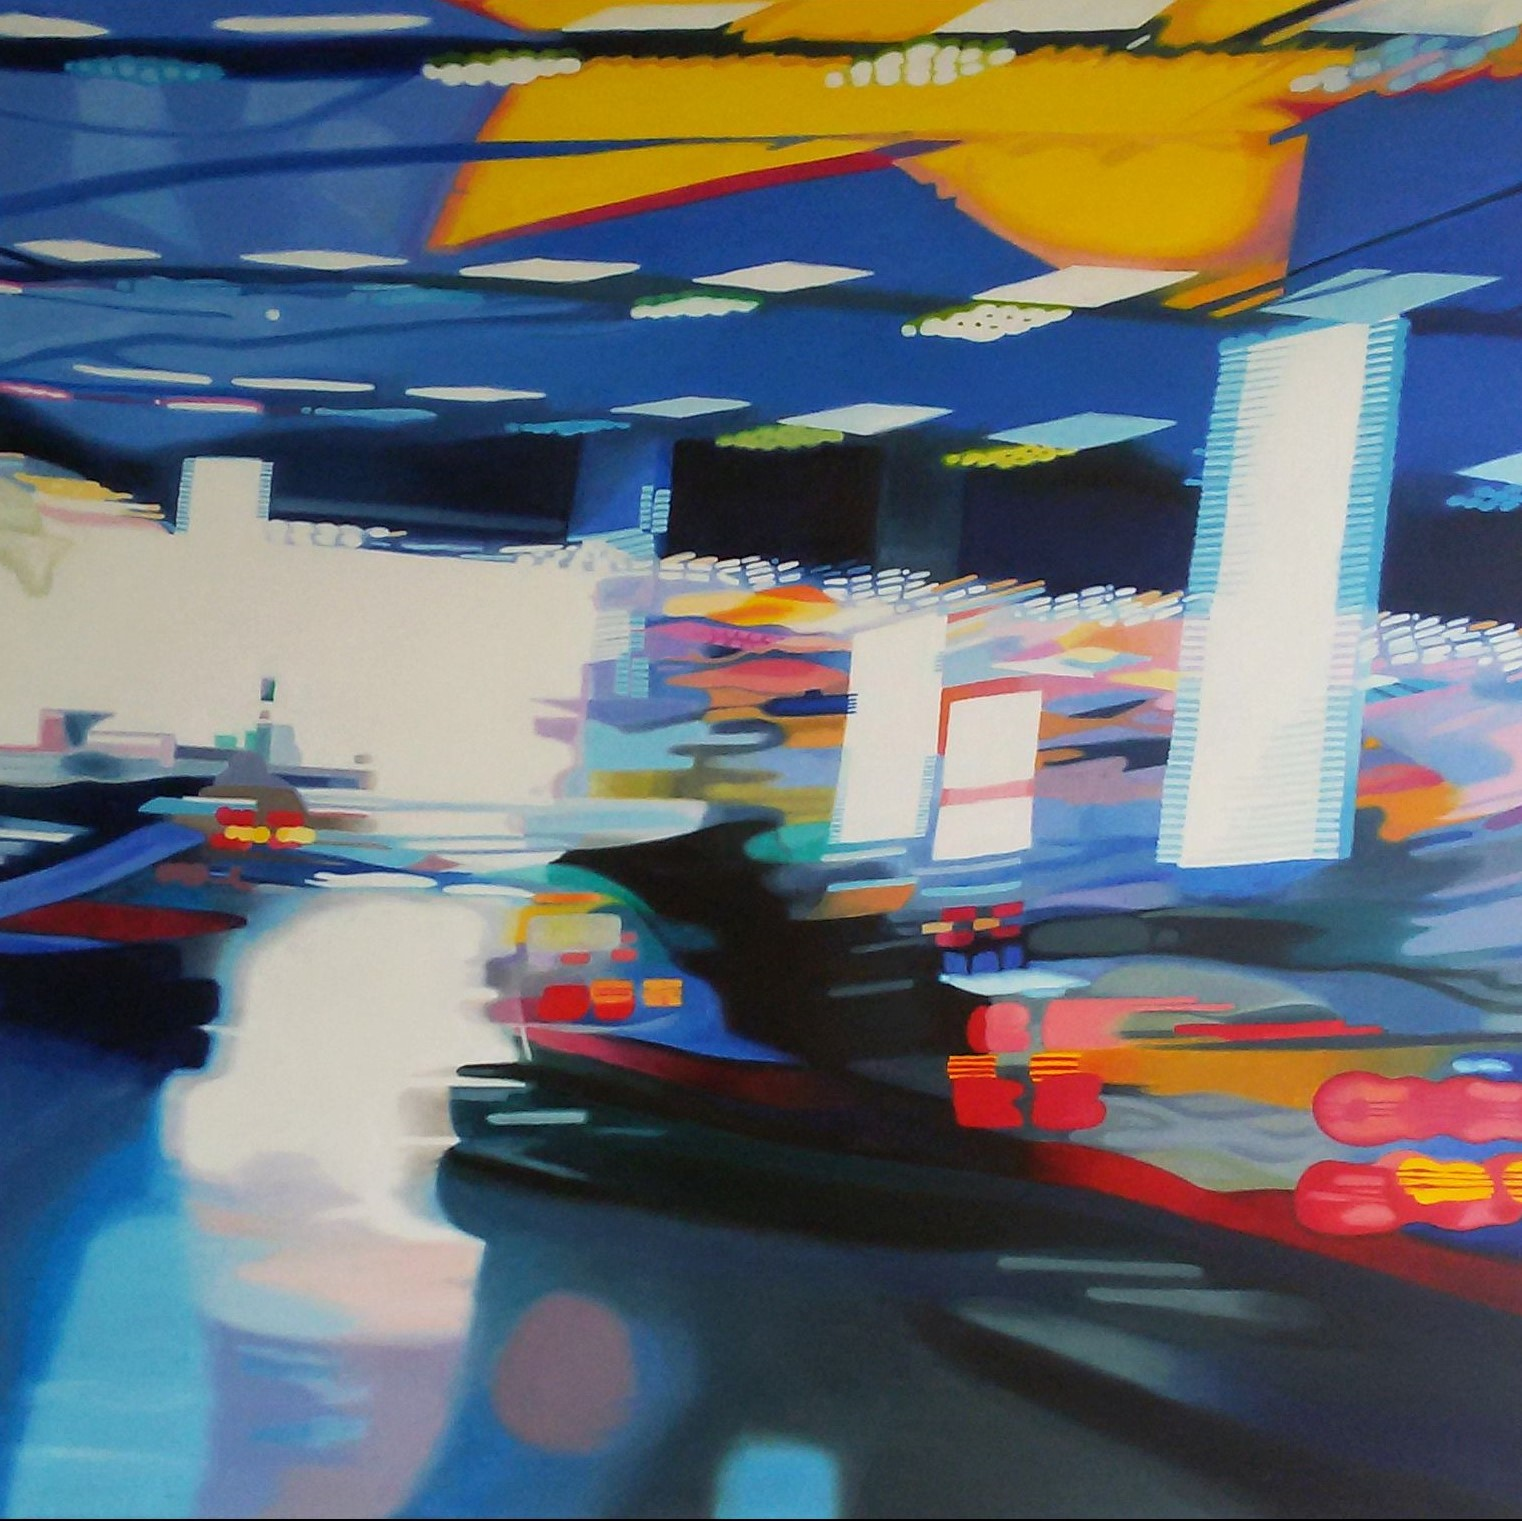 Autoscooter, Oil on Canvas, 100 cm x 100 cm